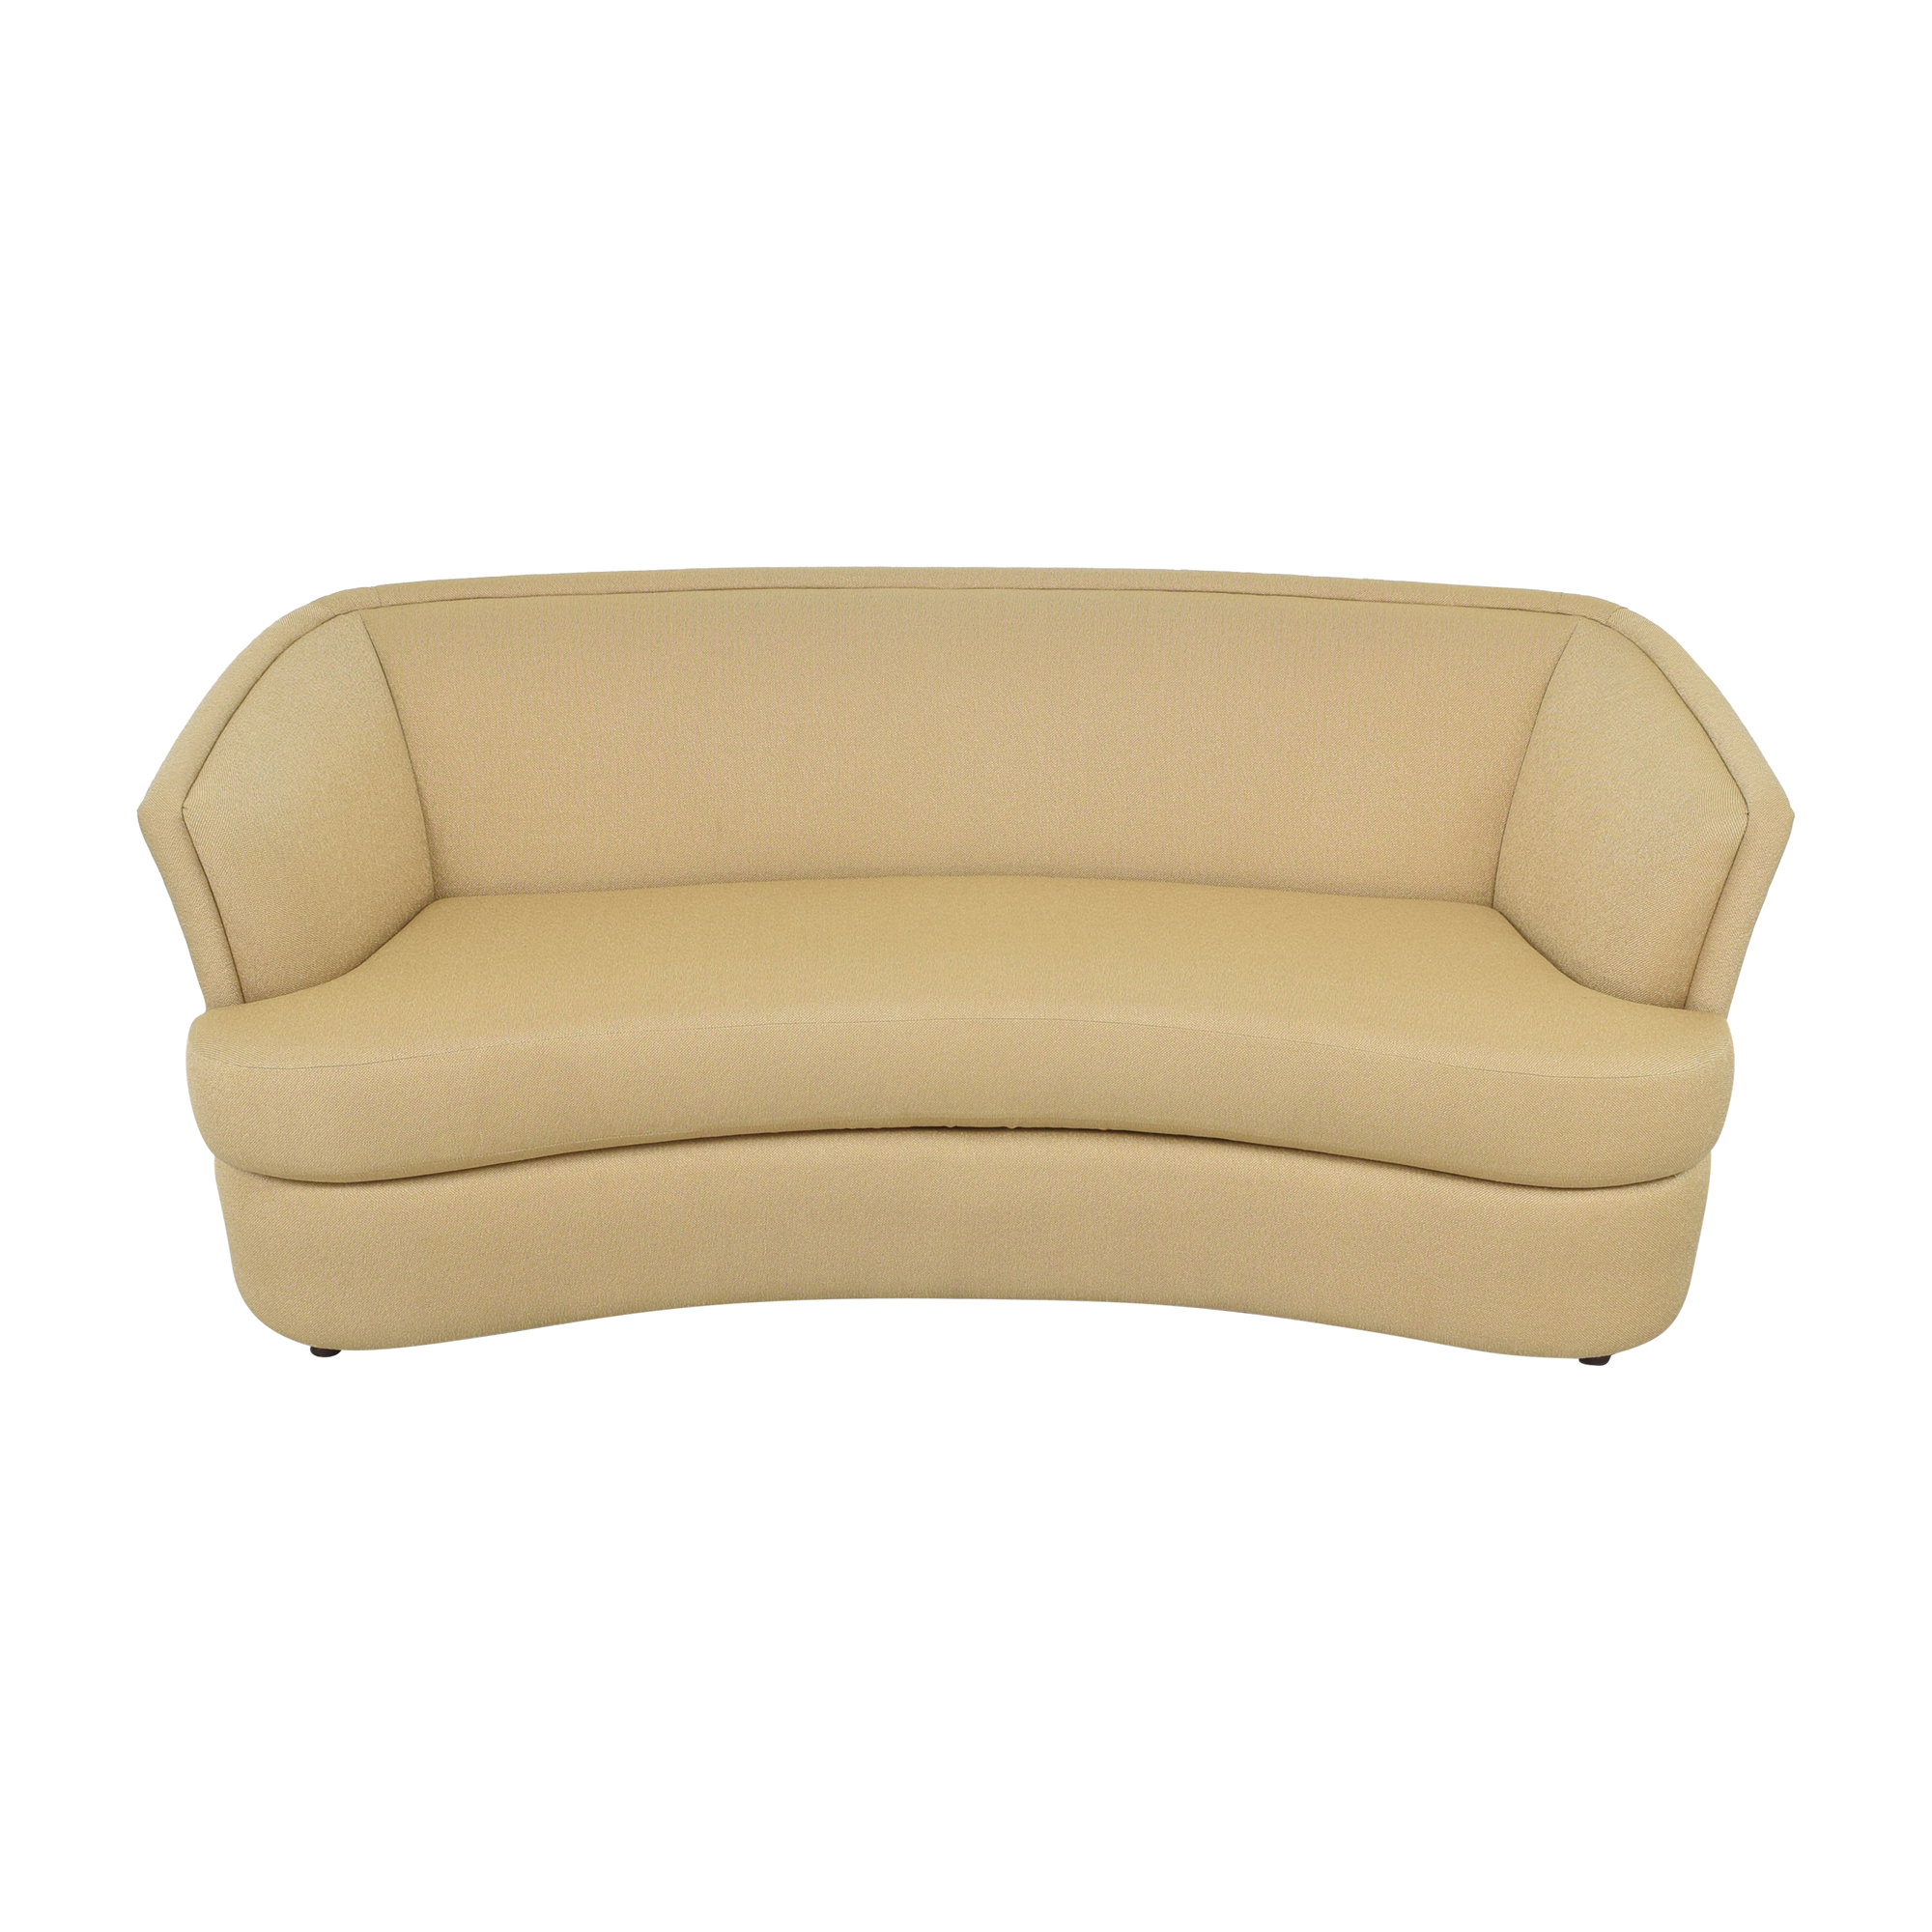 buy Safavieh Curved Sofa Safavieh Classic Sofas